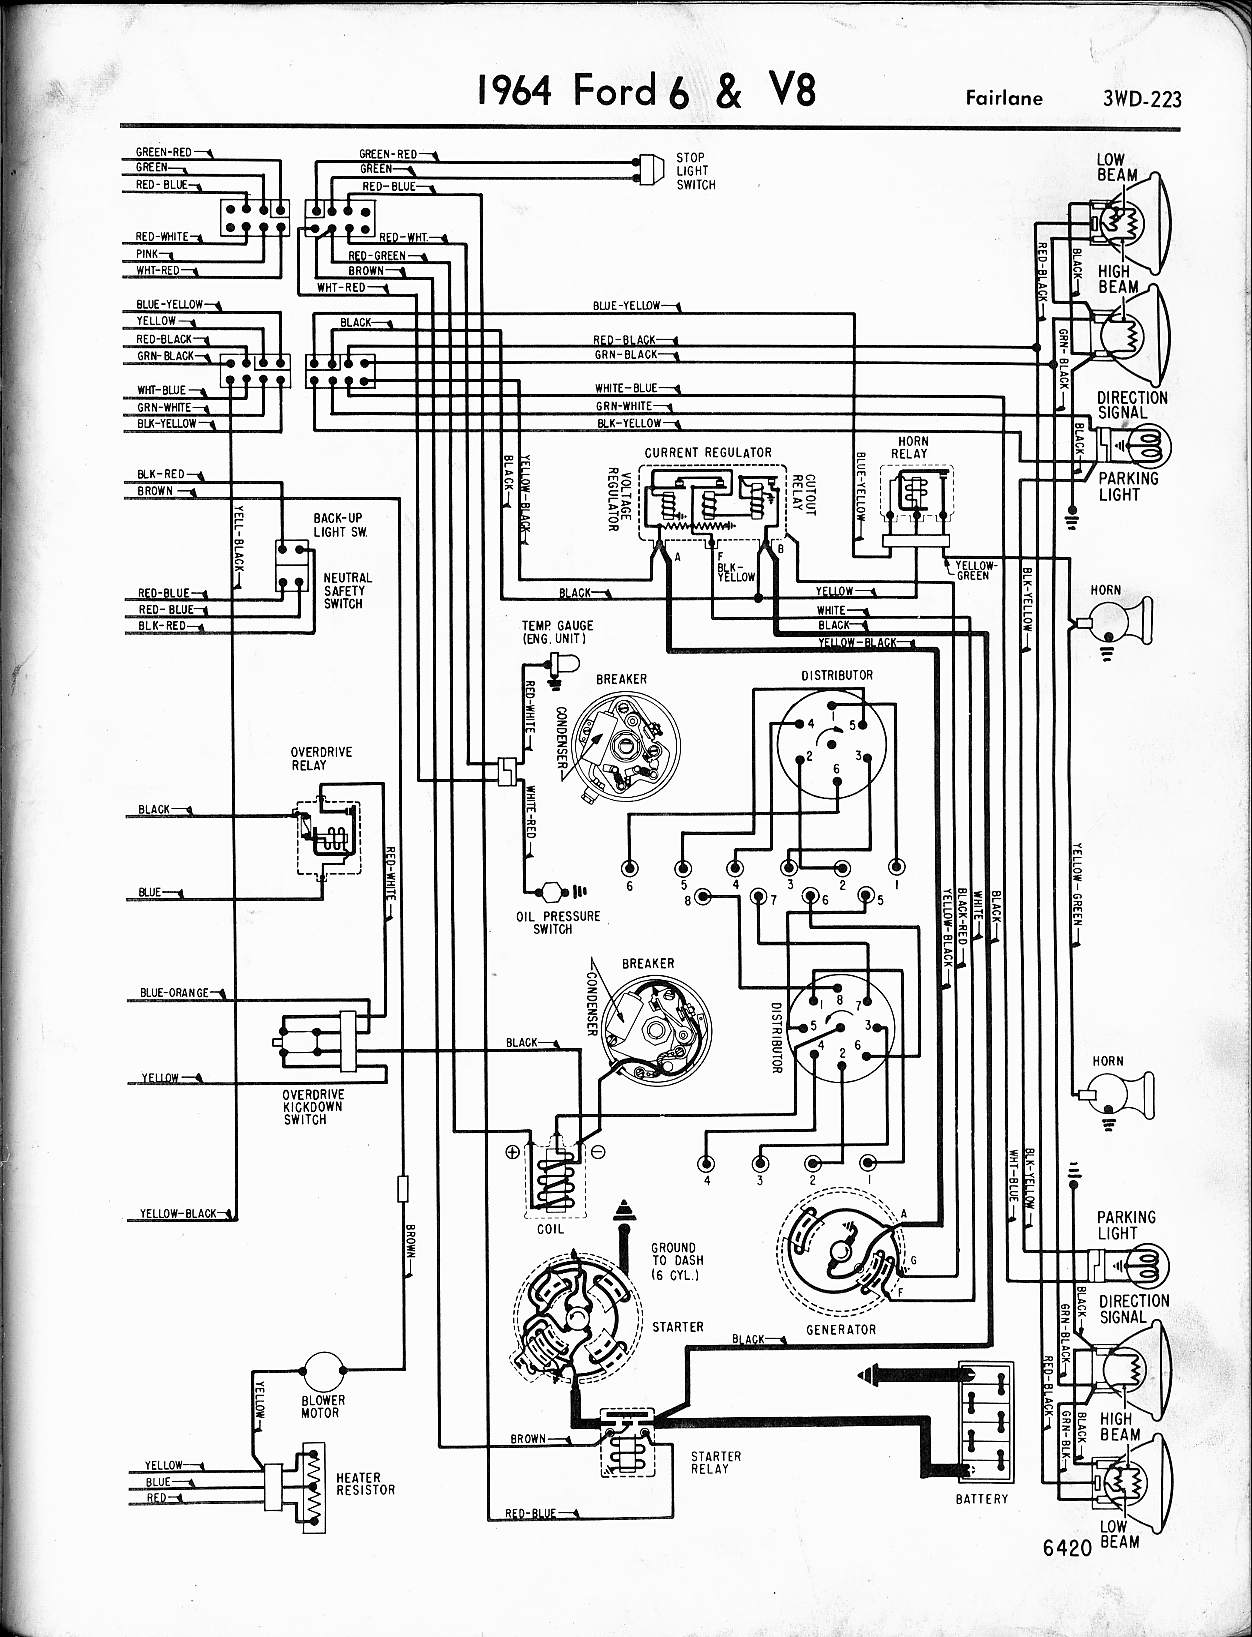 headlight switch wiring diagram 1966 fairlane schematics wiring rh orwellvets co